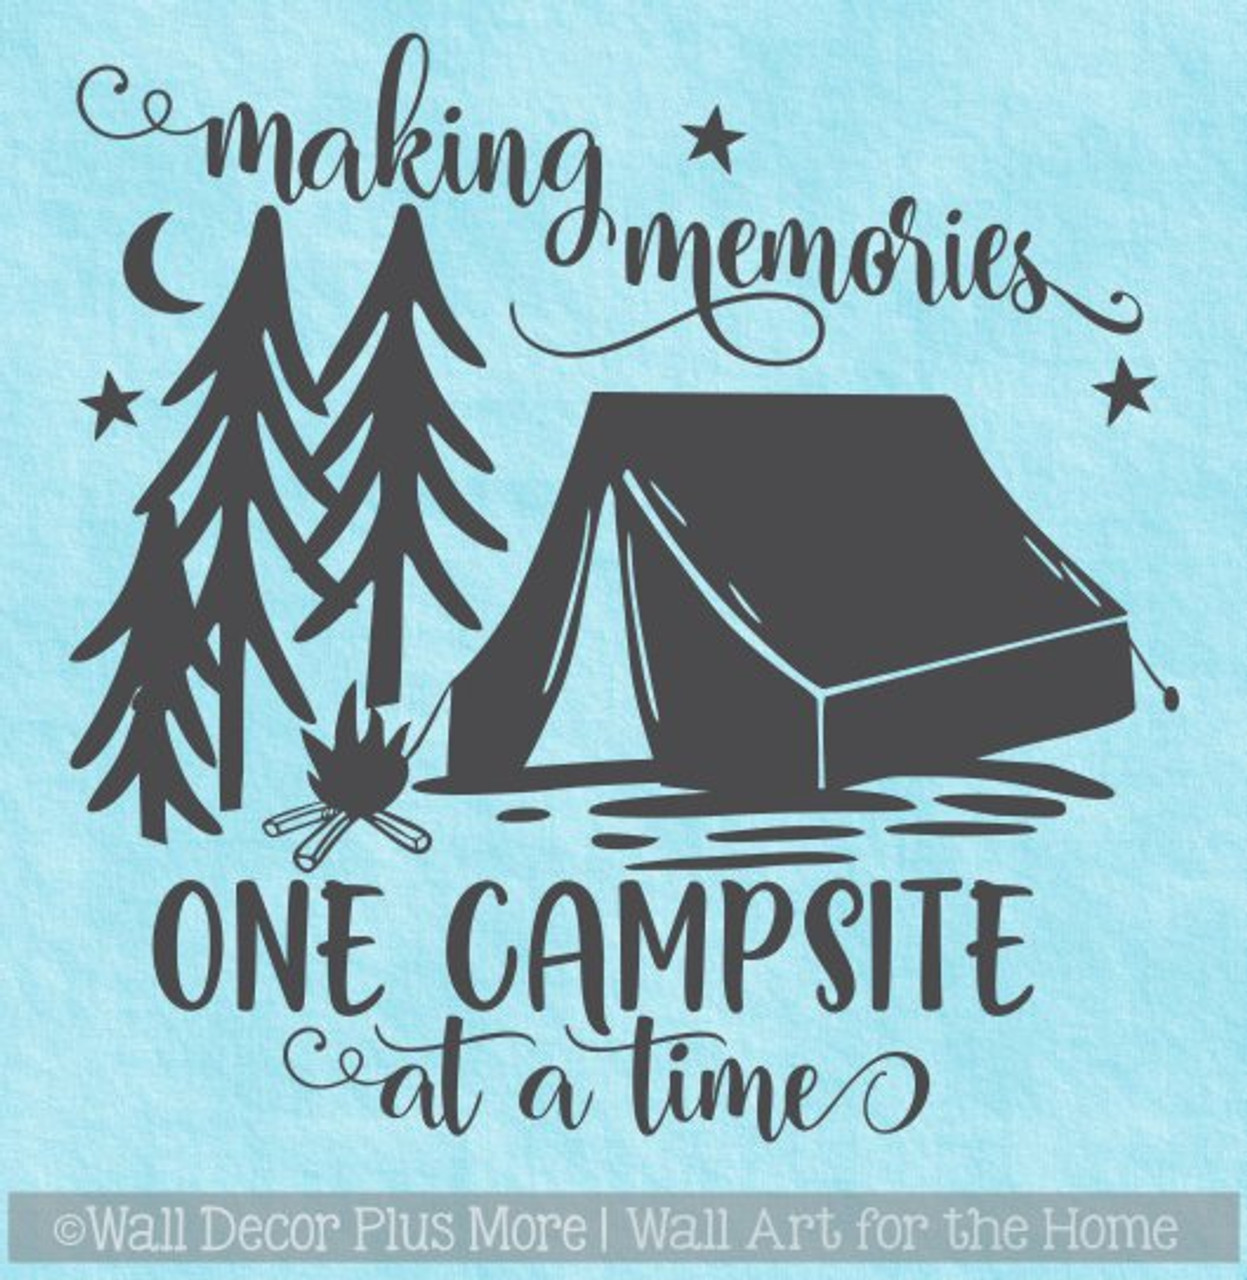 Camper Wall Art Decal Making Memories One Campsite Sticker Decor Quote